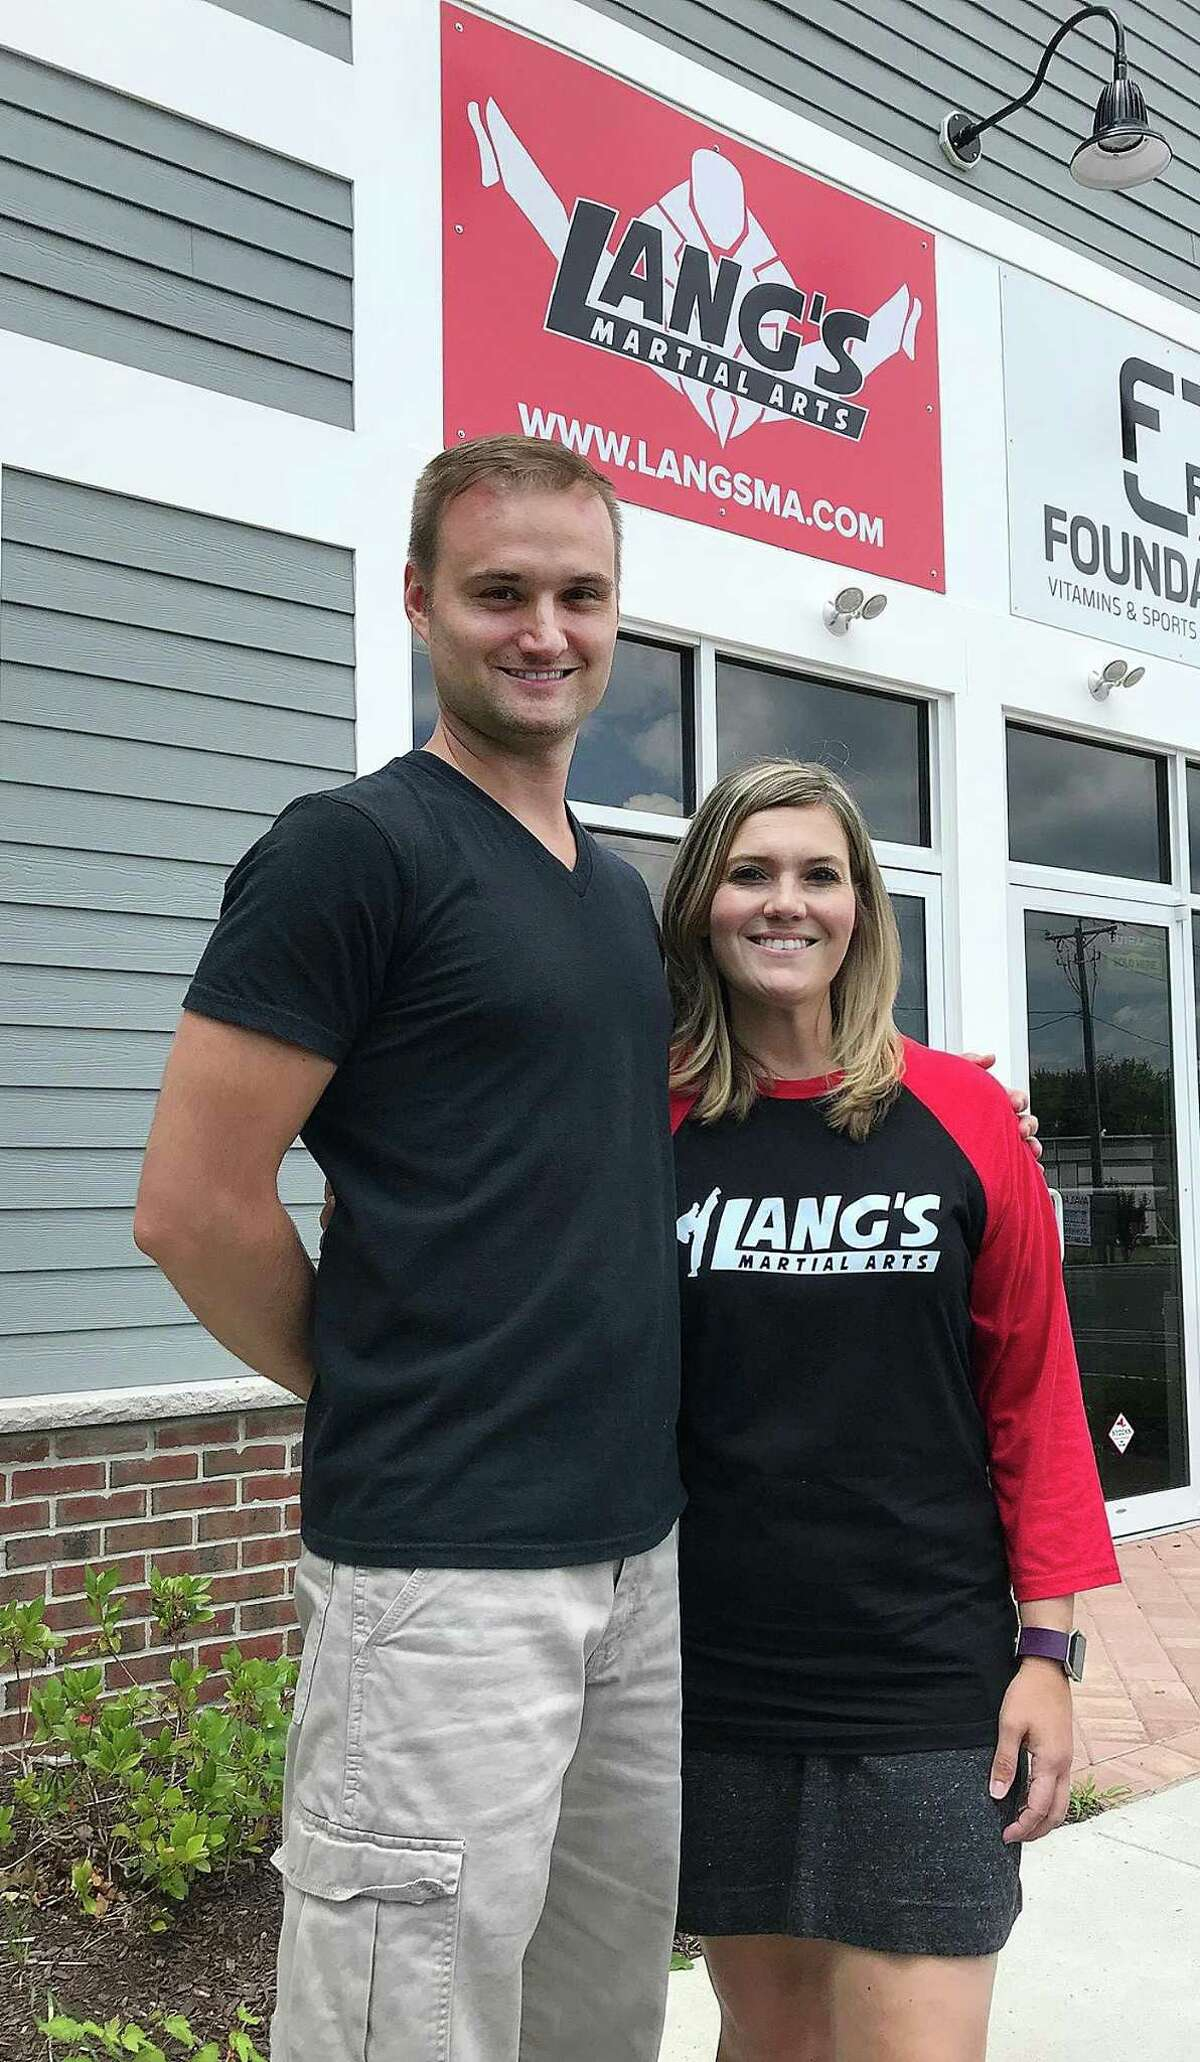 Joe and Teresa Lang of Lang's Martial Arts stand outside of their new studio in Brookfield, Conn., on Wednesday, July 11, 2018.